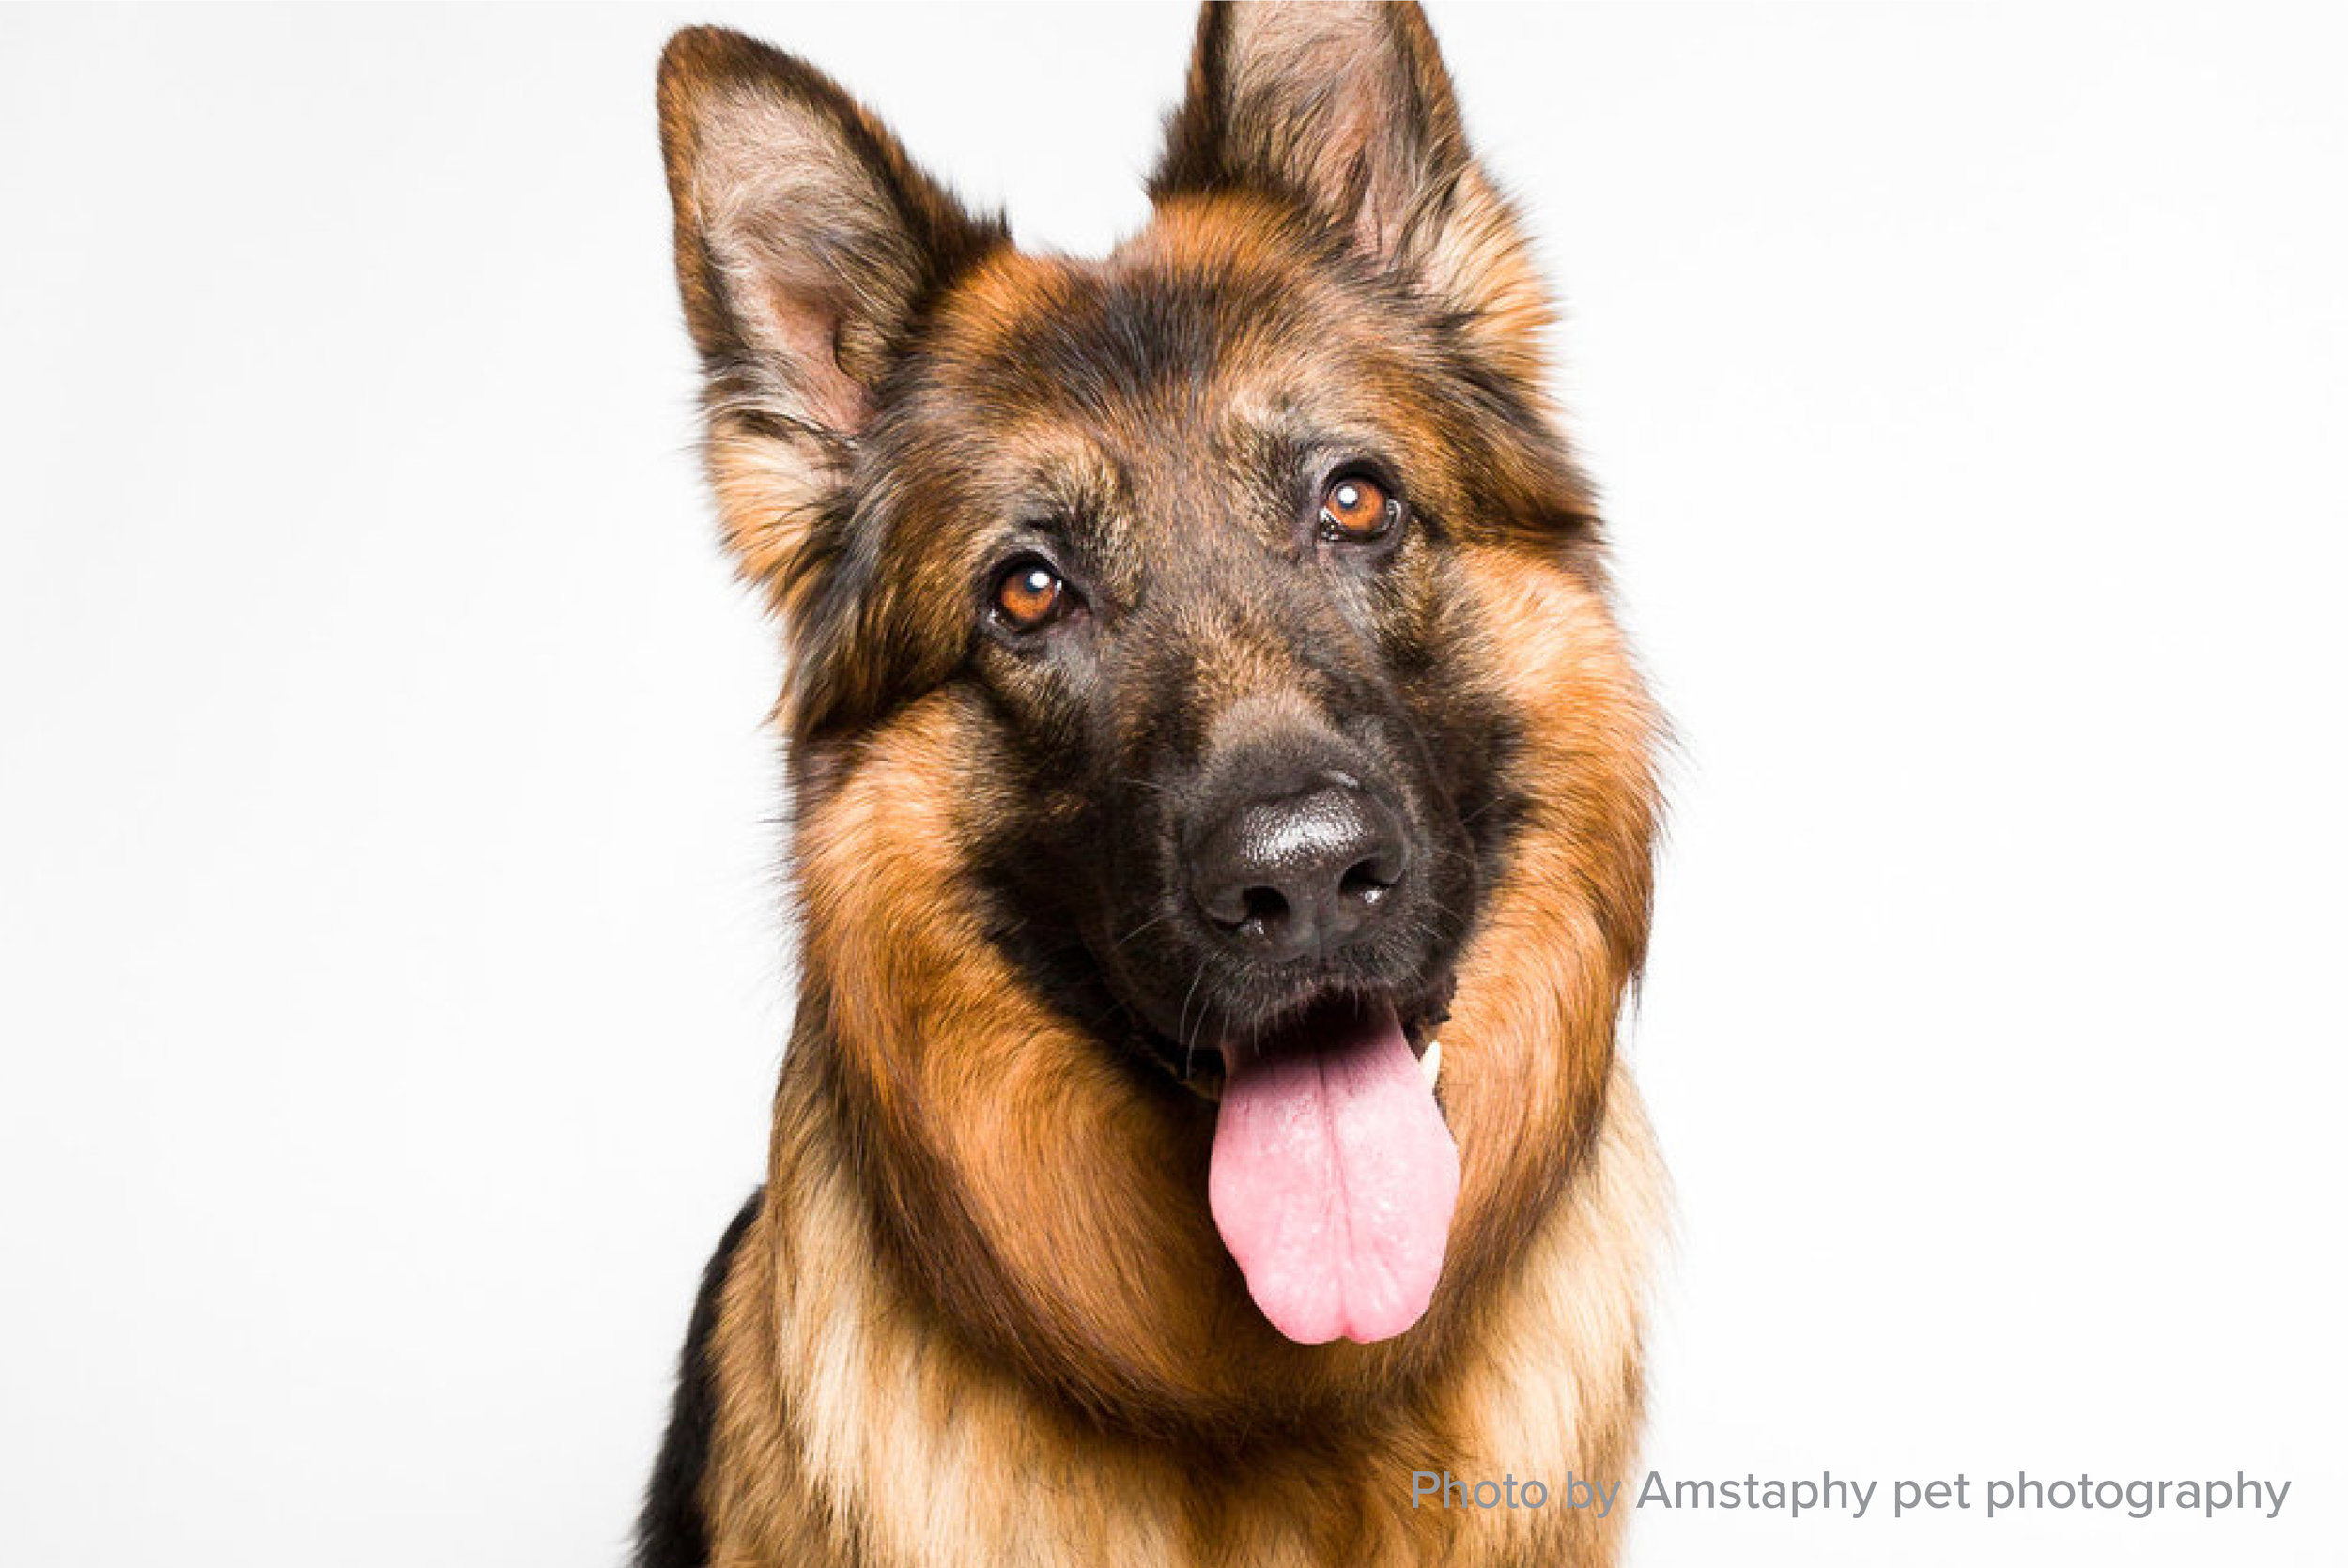 Miami's Love of German Shepherds - While you may assume members of the 305 area code would prefer a Pitbull (sorry bad joke), according to the American Kennel Club, German Shepherds are Miami's most popular dog breed.